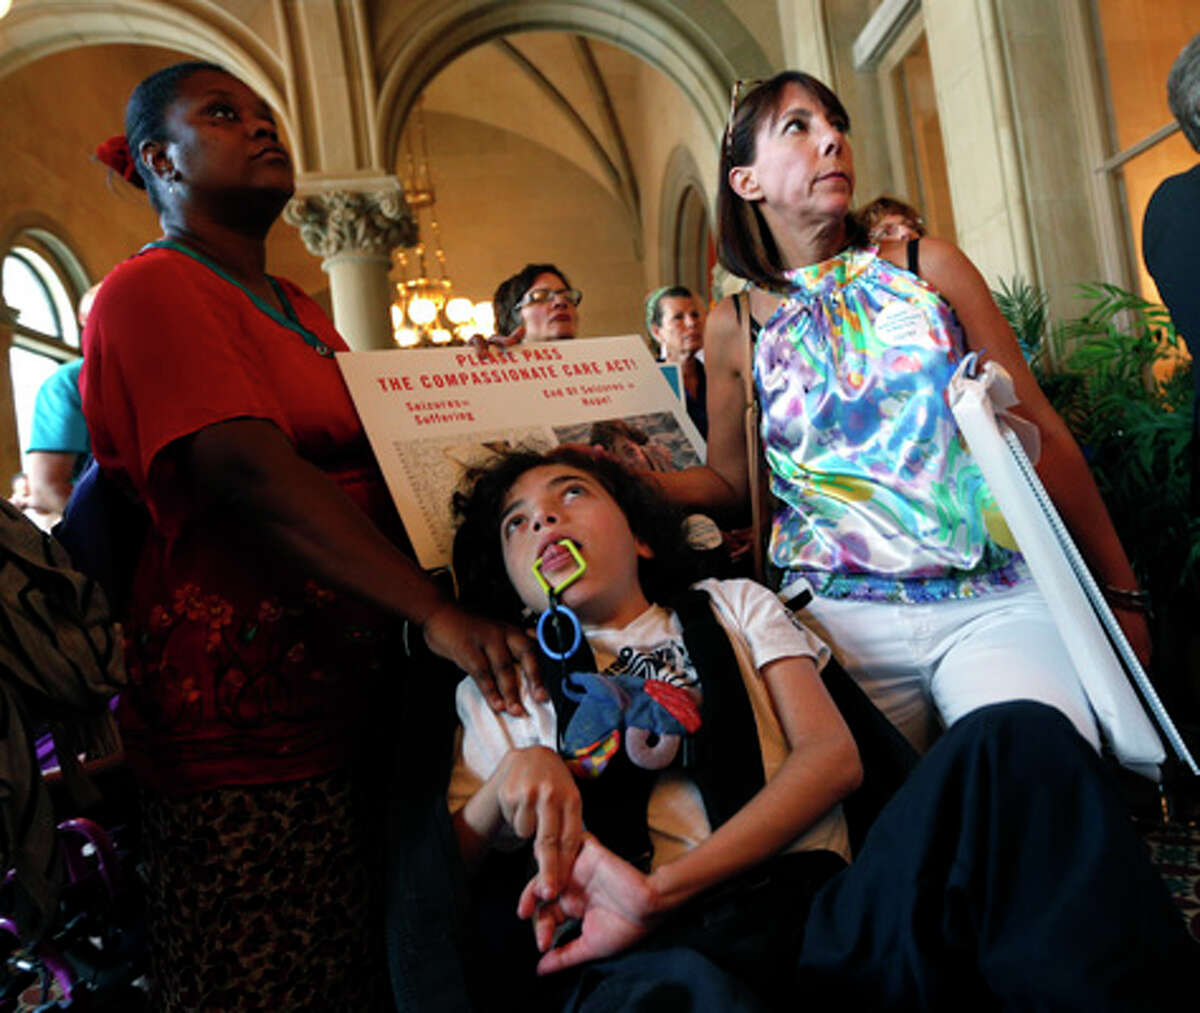 Oliver Miller, 14, center, with his mother Missy Miller, right, and nurse Sandra Sanon during a rally in support of medical marijuana at the Capitol on Wednesday, June 18, 2014, in Albany, N.Y. Dozens of advocates for legalizing medical marijuana are blaming Gov. Andrew Cuomo for stalling the so-called